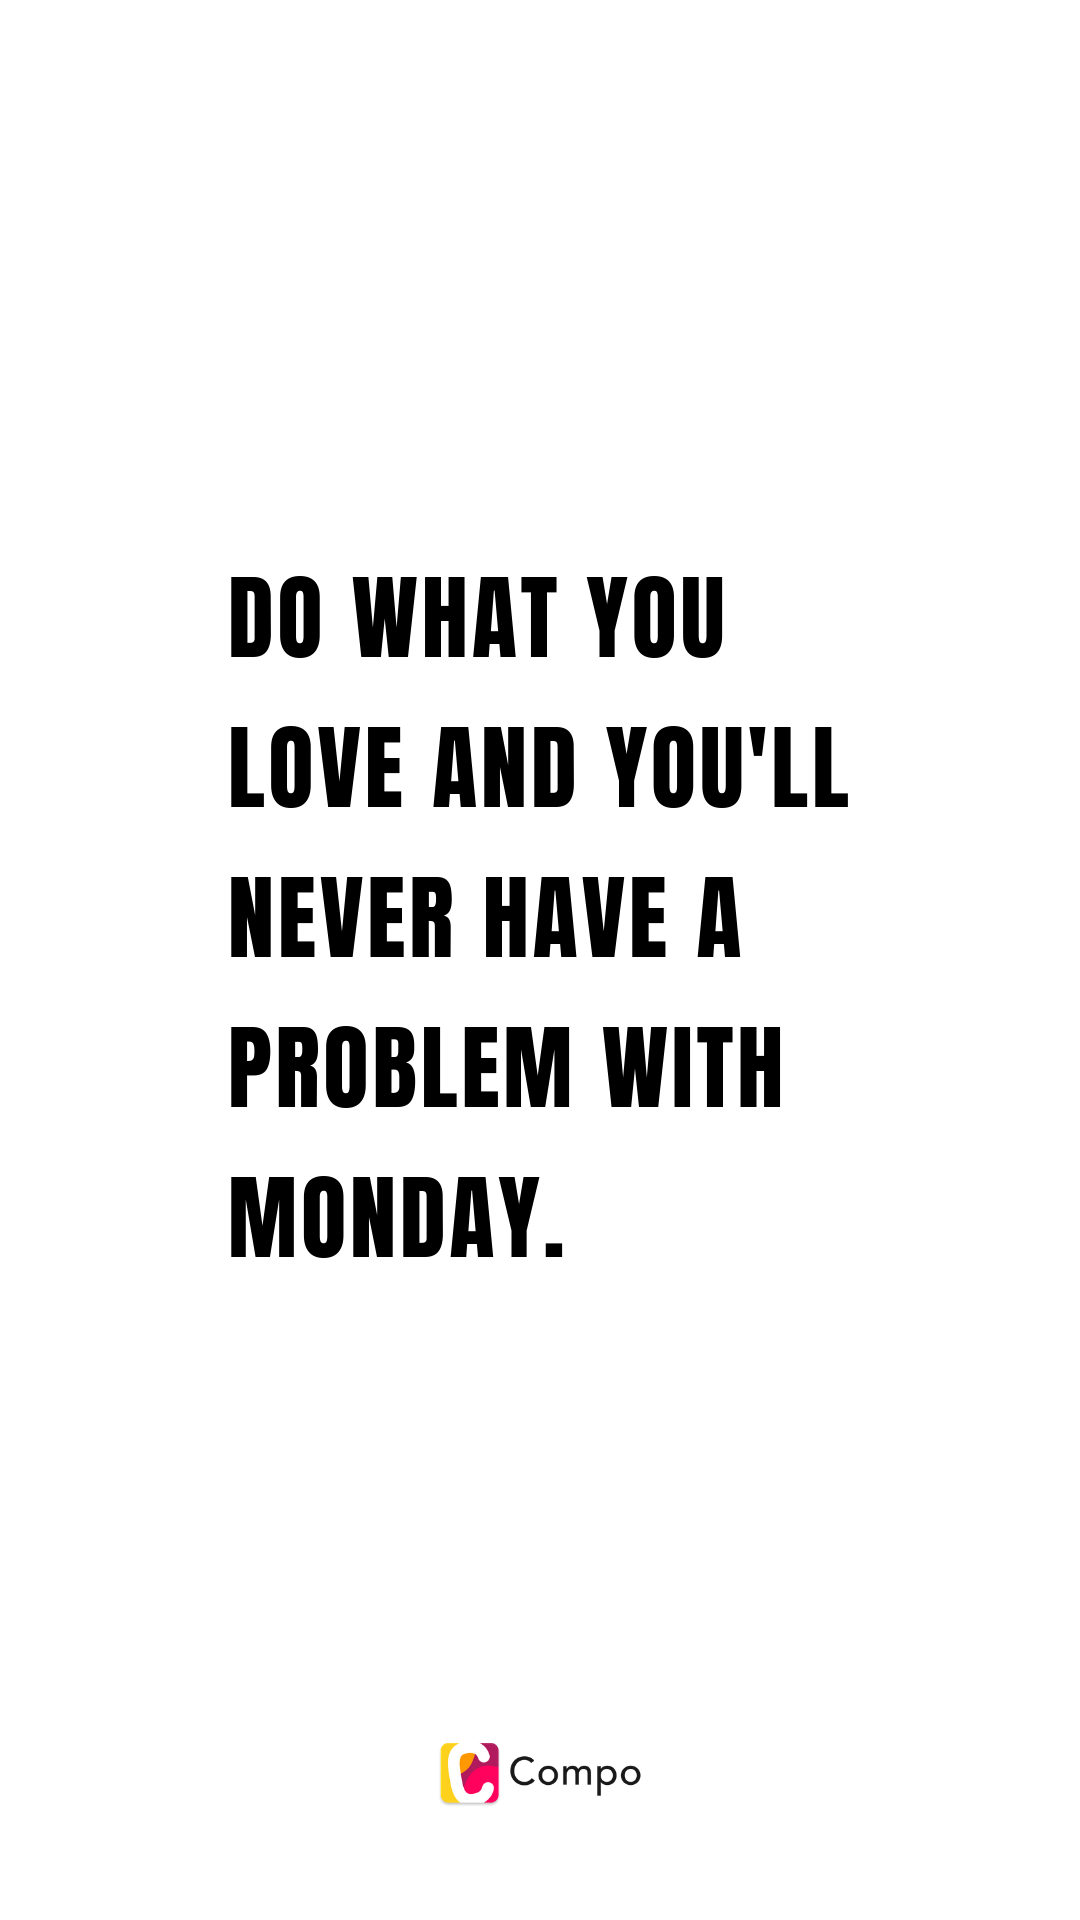 Monday Quote Work Passion Quotes Love Your Job Quotes Job Quotes Funny